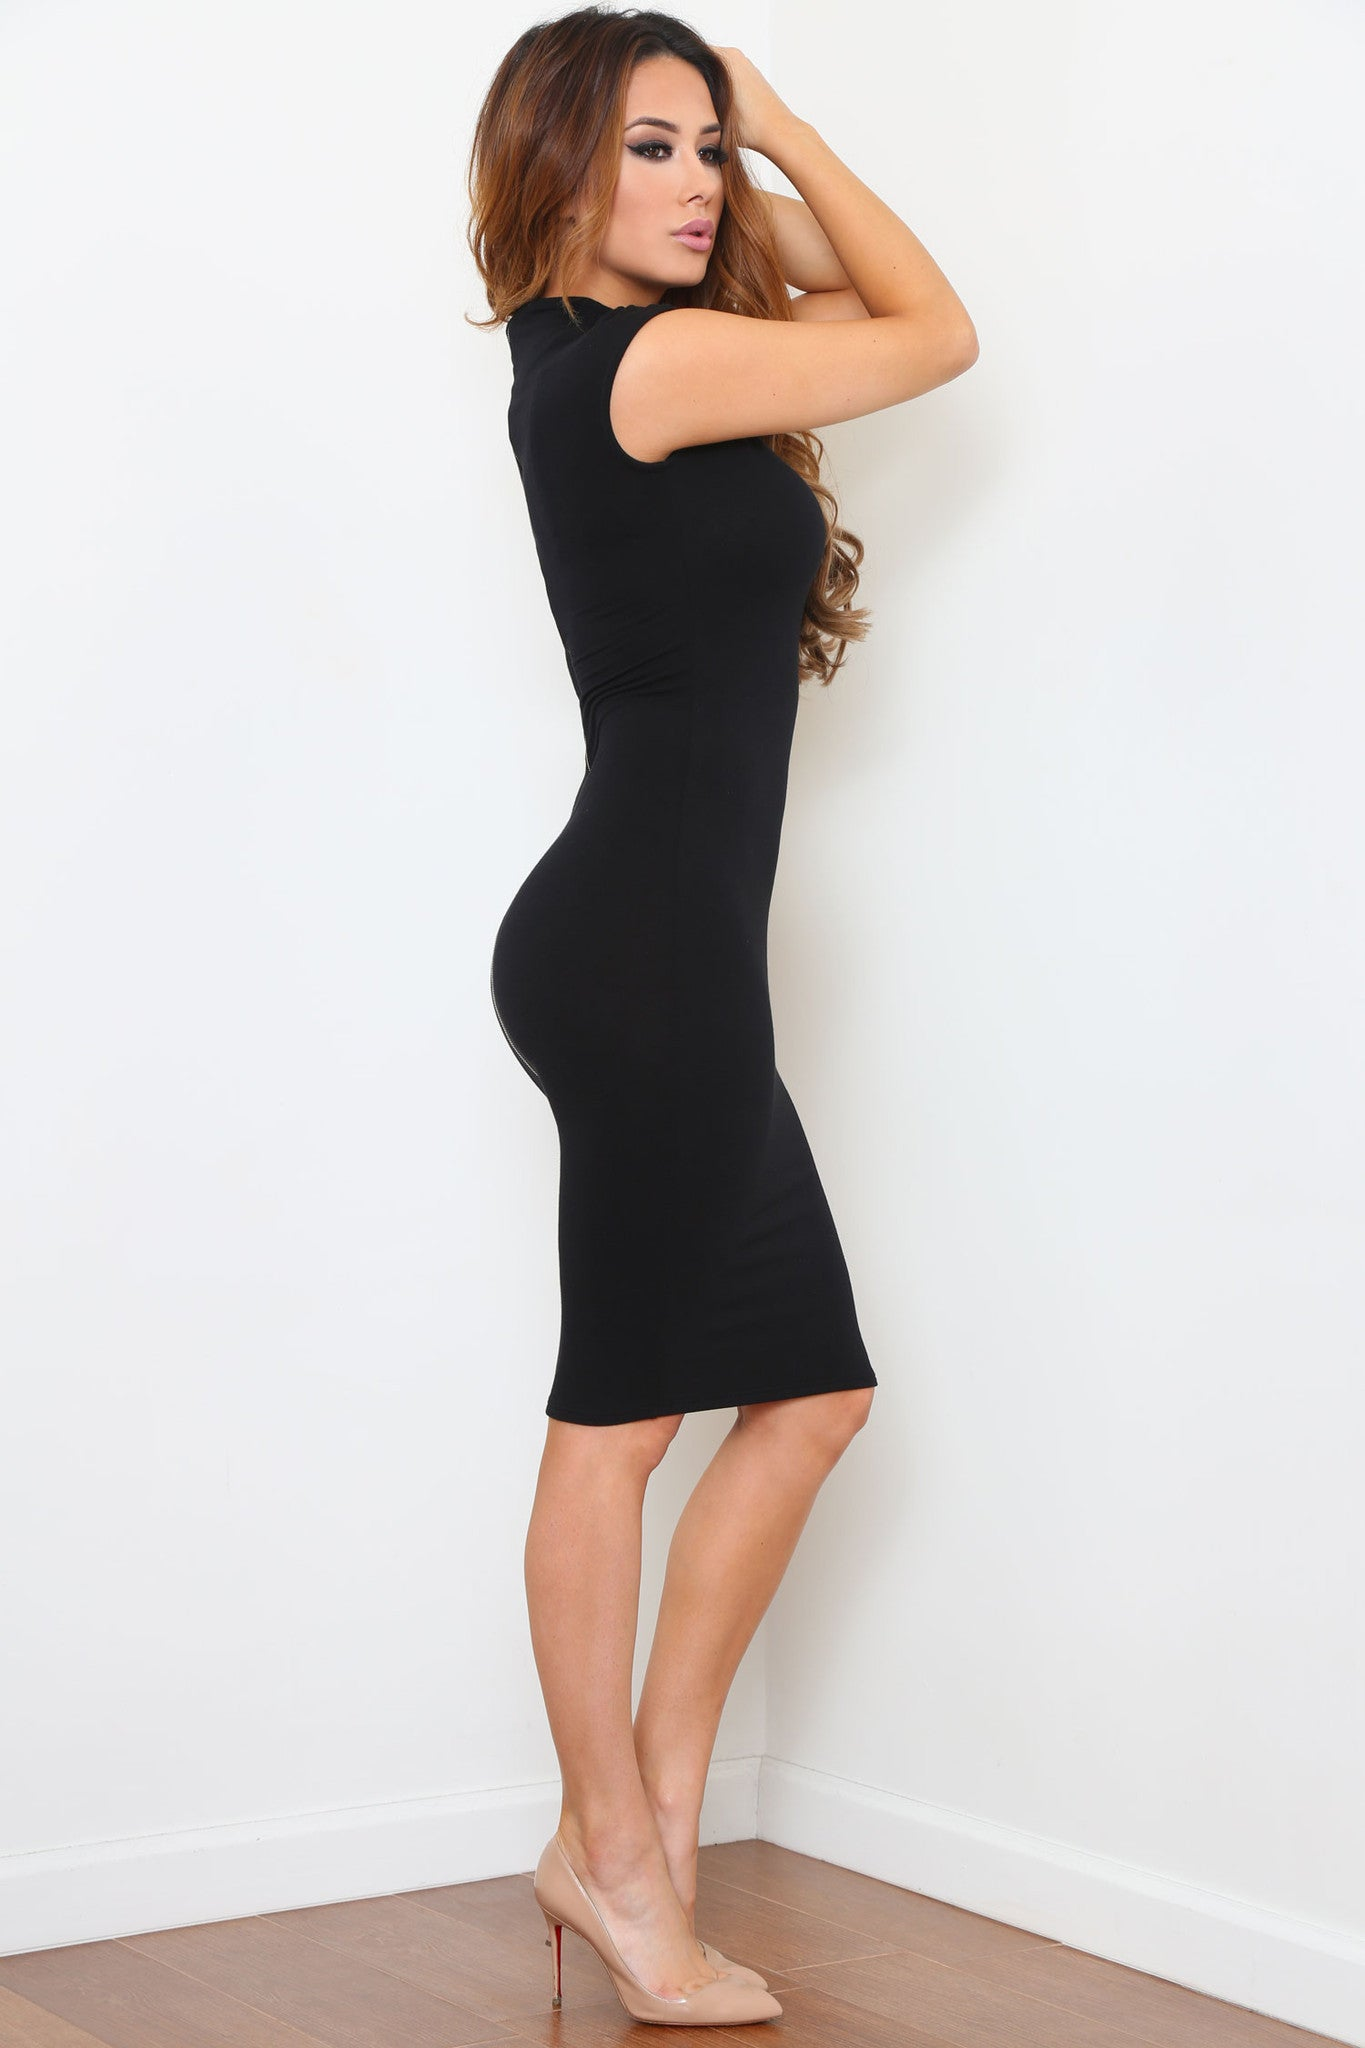 ALLIE DRESS - Glam Envy - 2